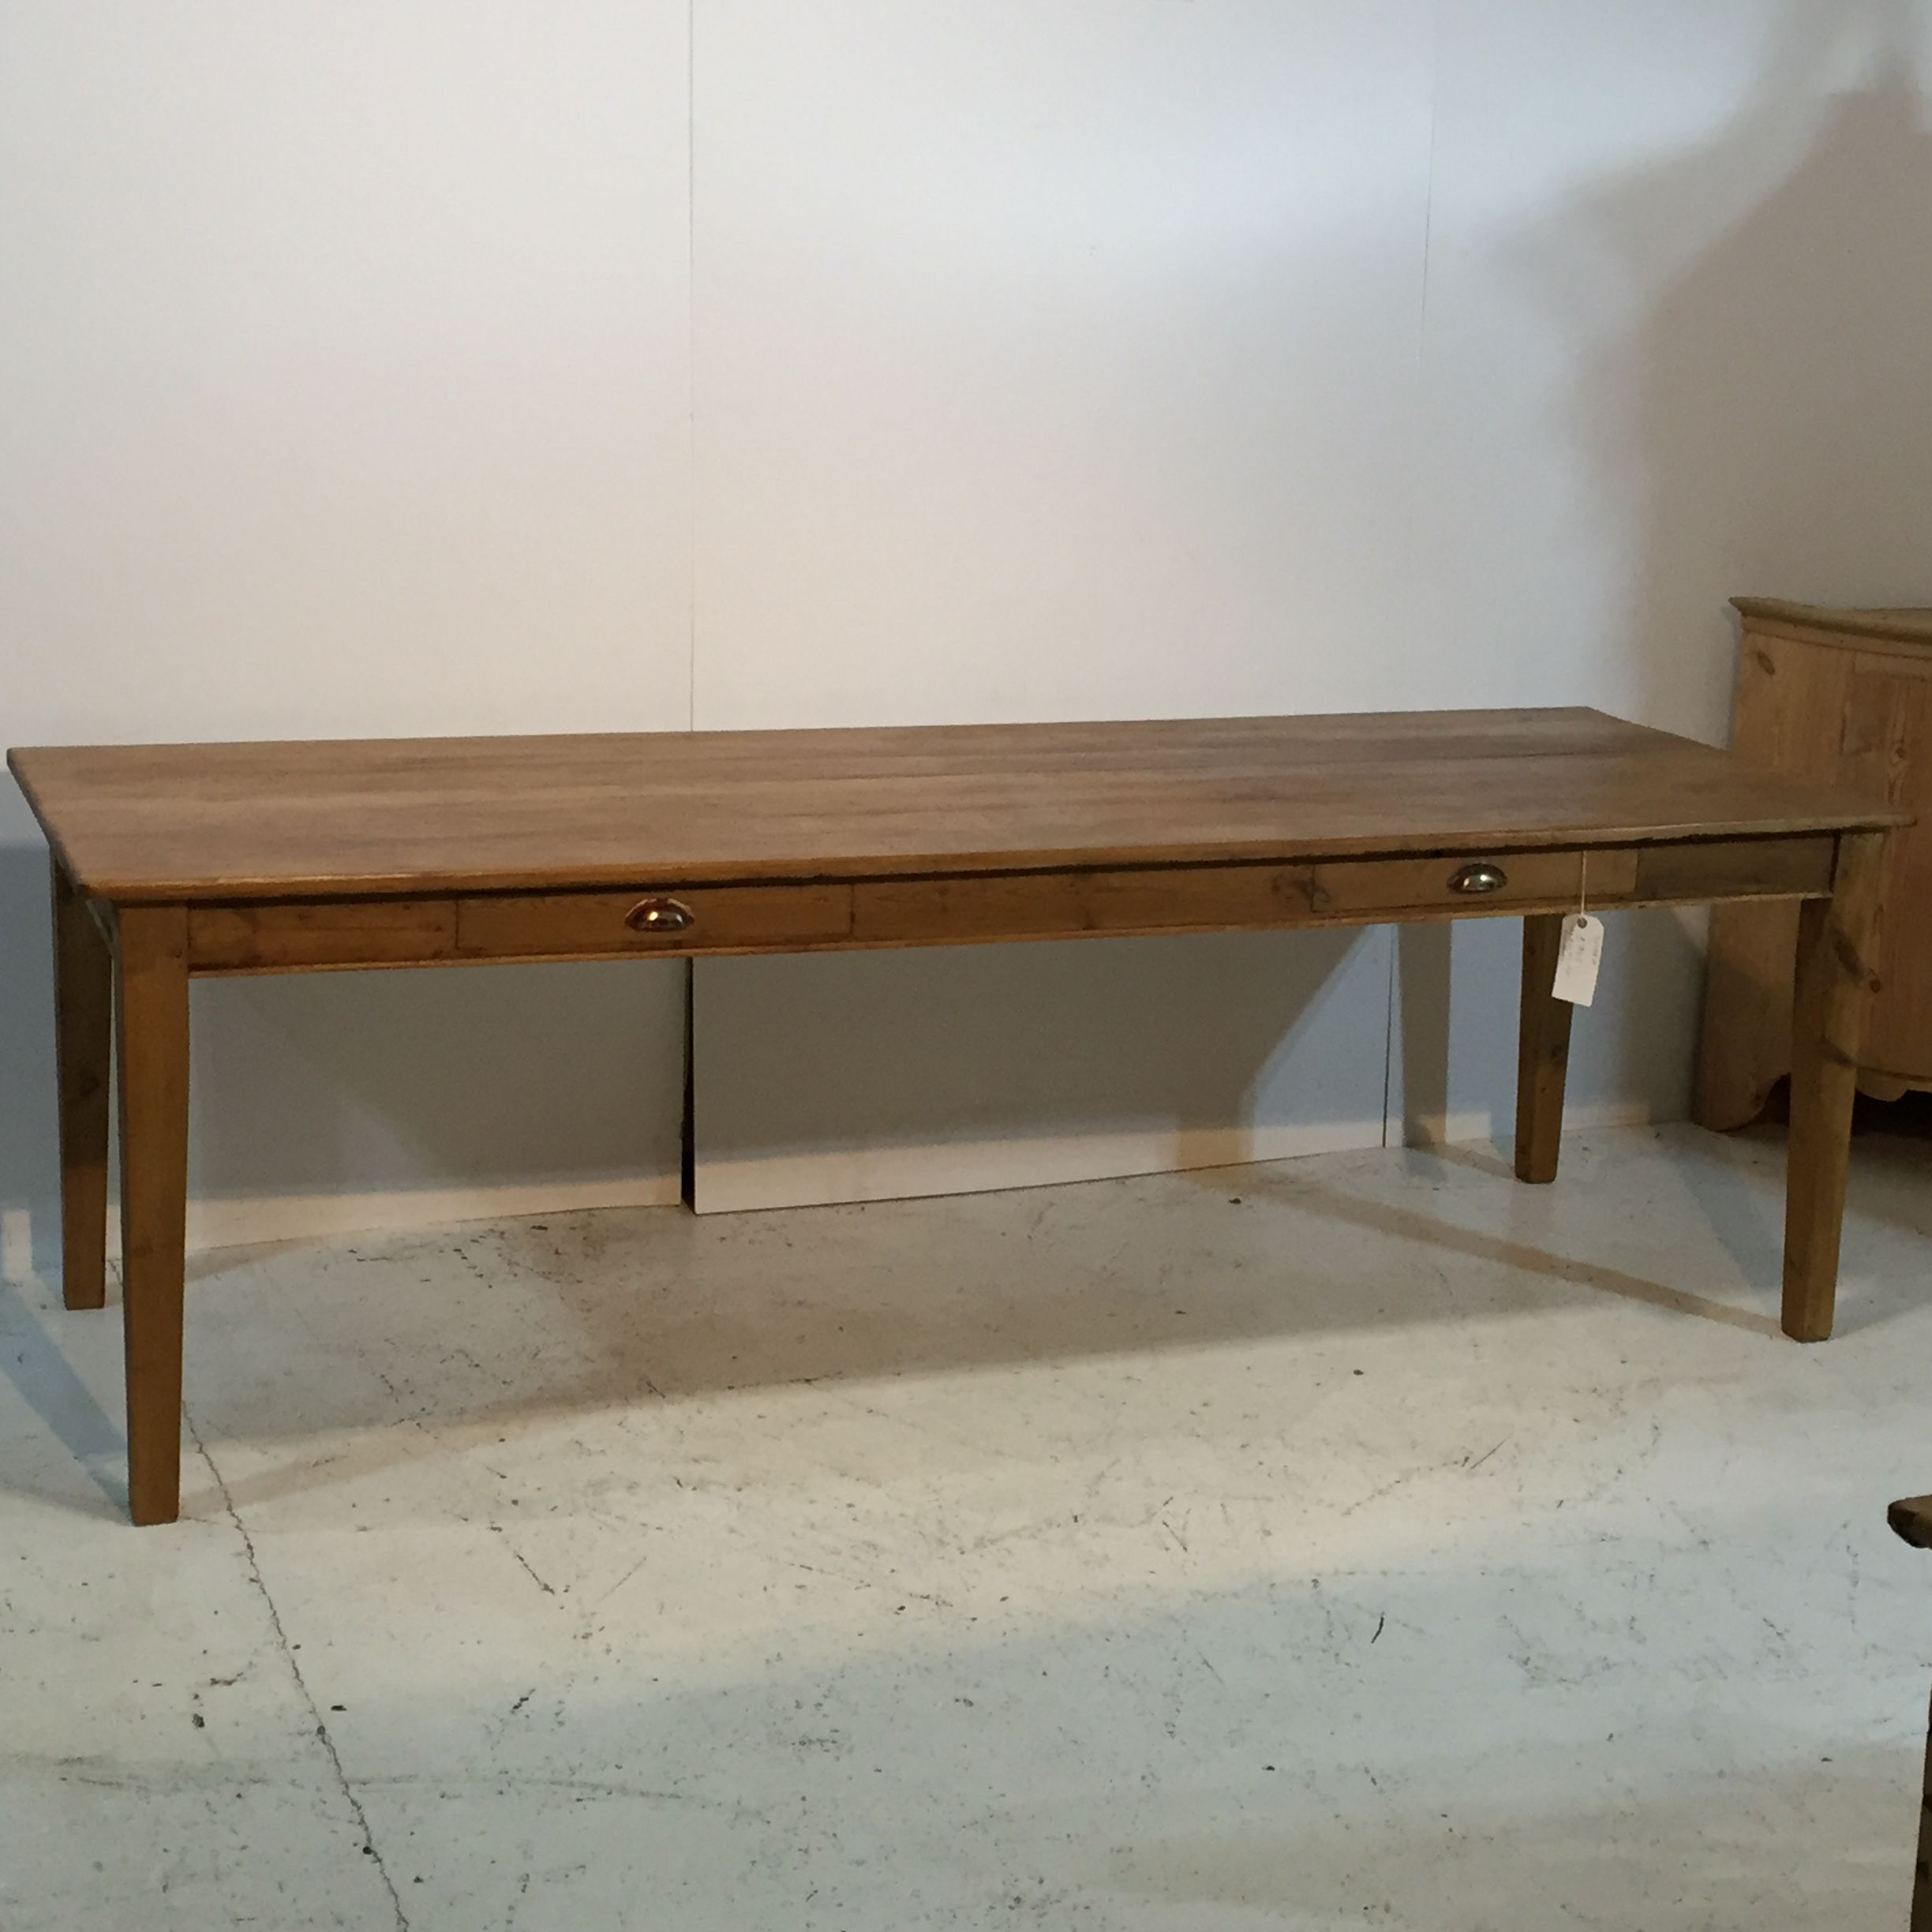 8ft Table Handmade From Old Pine Floorboards T2552g Pine  # Muebles Lolo Morales